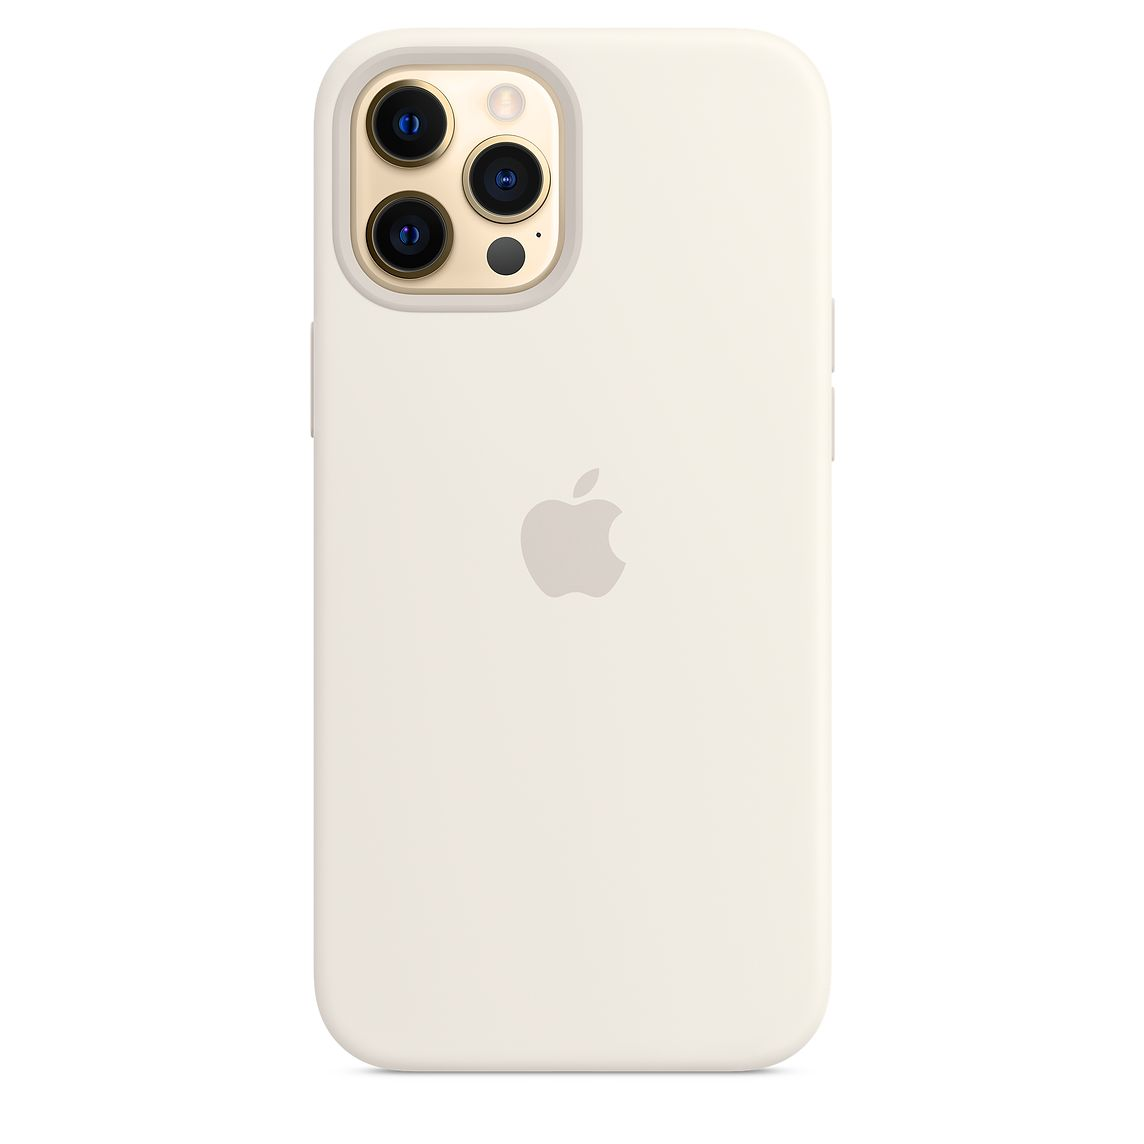 - iPhone 12 Pro Max Silicone Case with MagSafe / Blanco 1